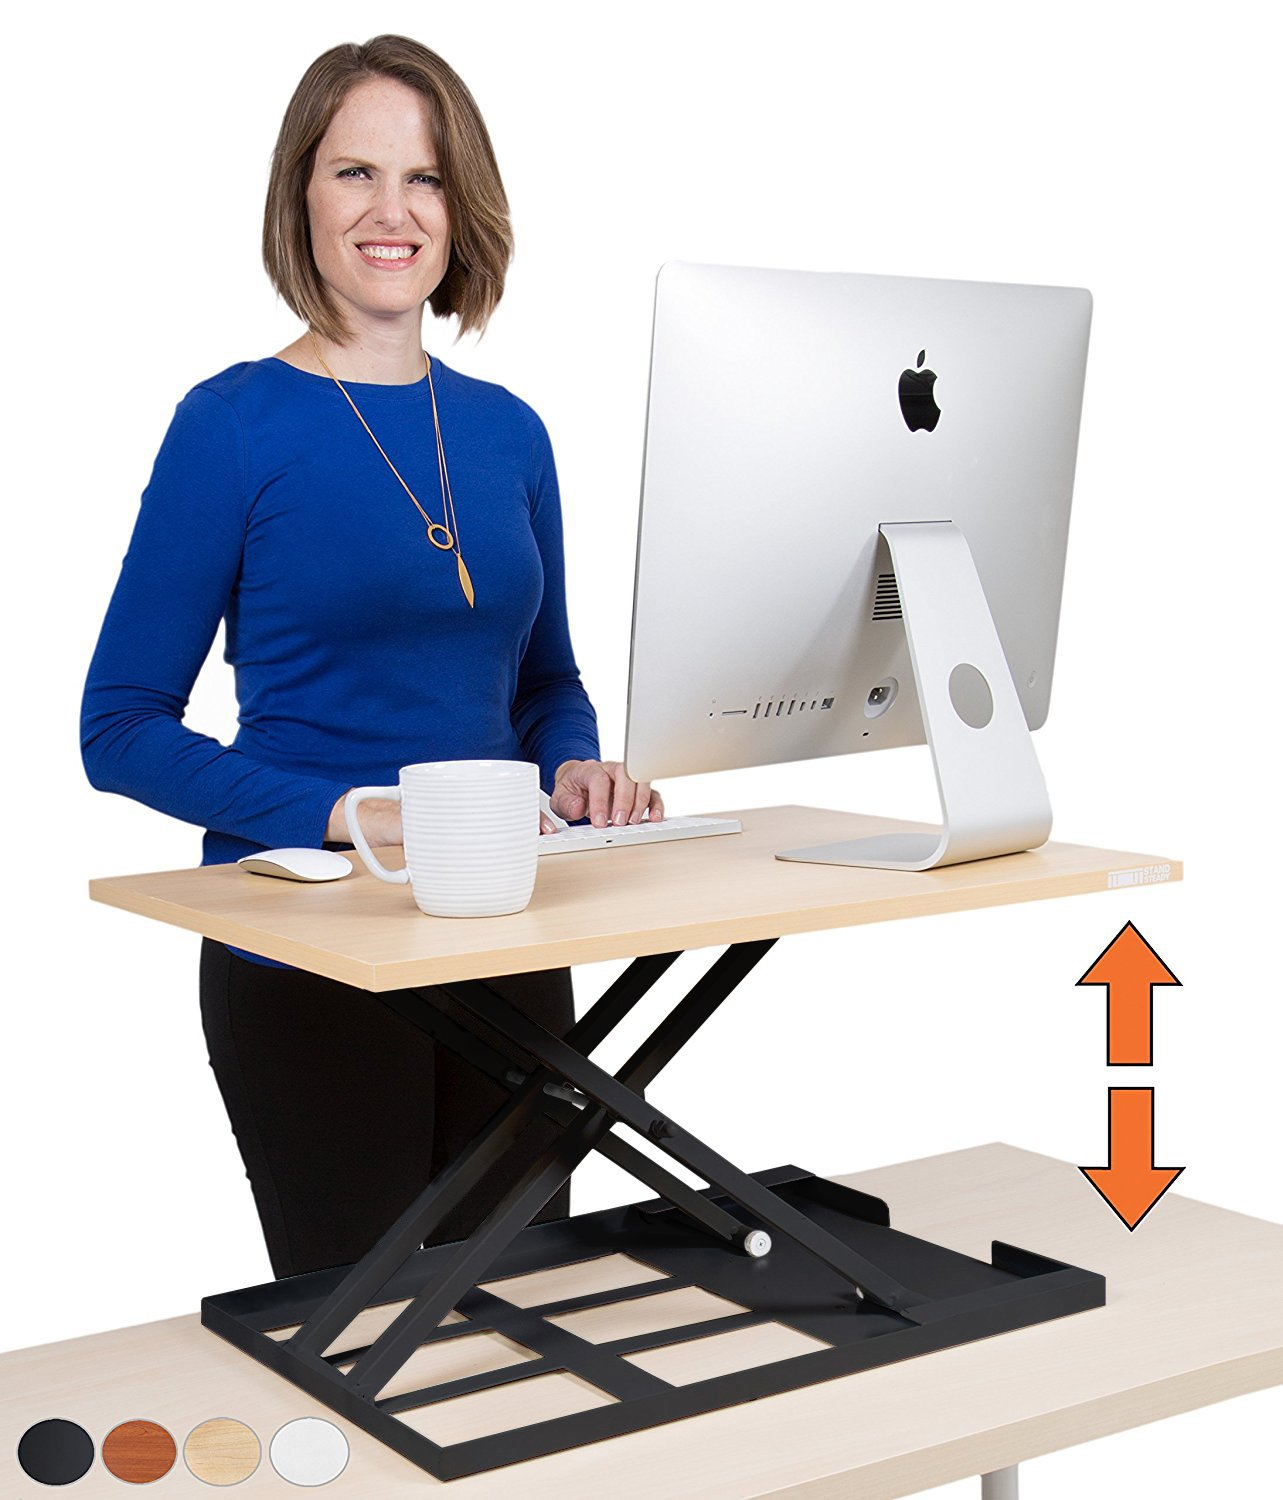 Standing Desk X-Elite - Stand Steady Standing Desk | X-Elite Pro Version, Instantly Convert Any Desk into a Sit/Stand up Desk, Height-Adjustable, Fully Assembled Desk Converter (Maple) (28 inch) by Stand Steady